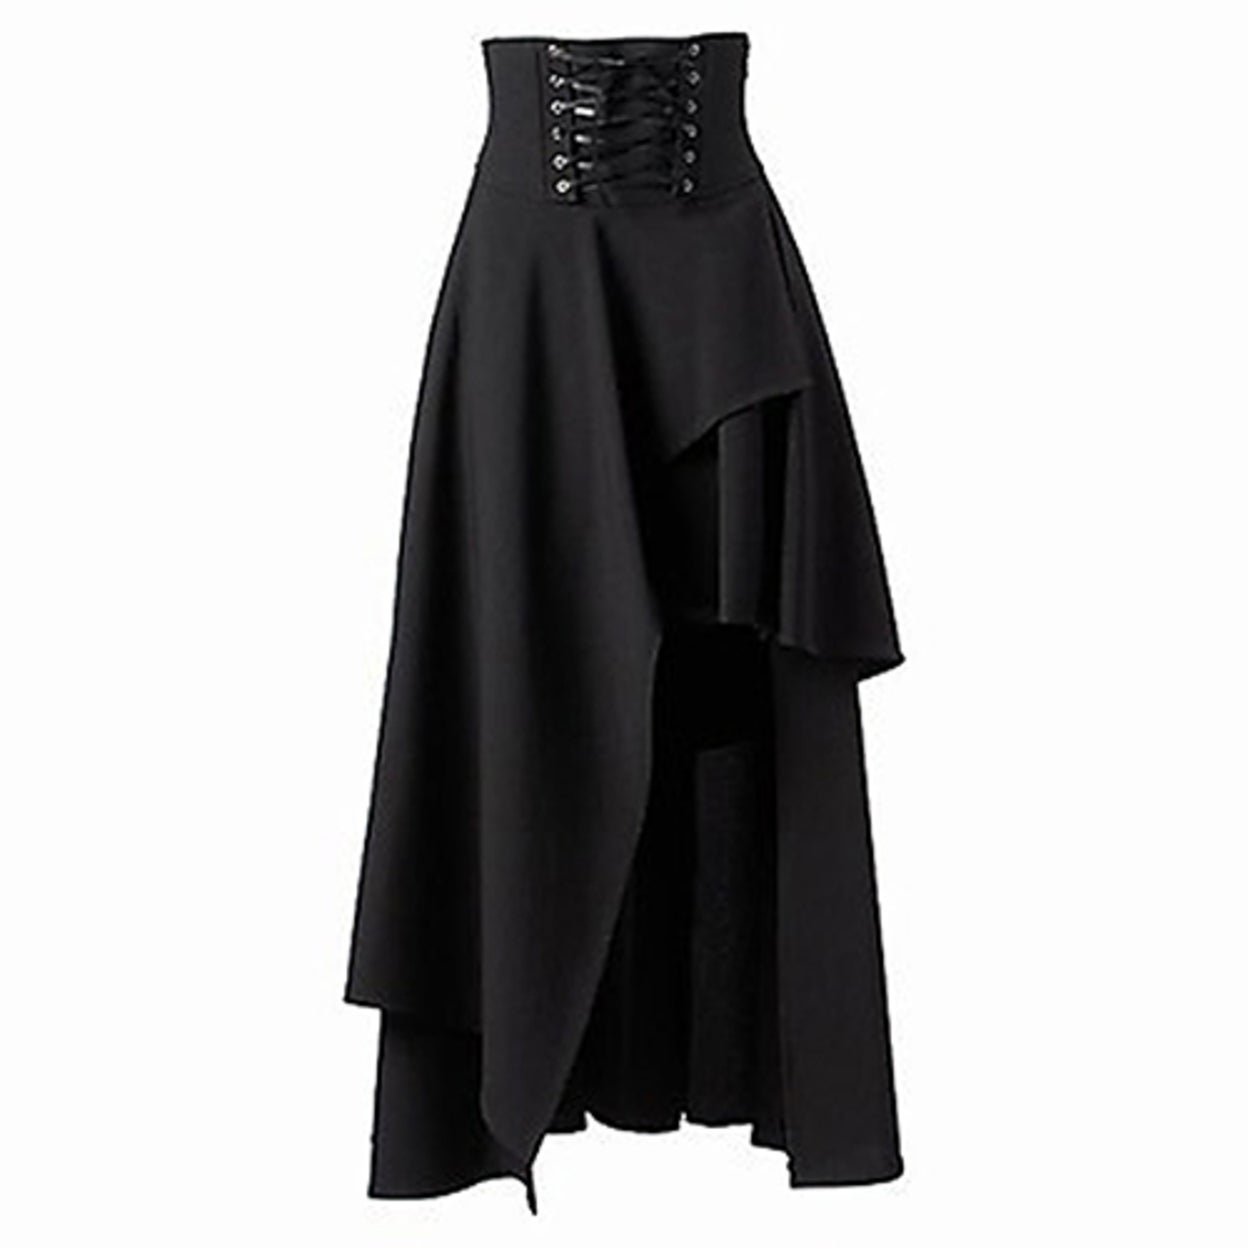 5fdc9261b Shop Women's Fashion Summer Gothic Style Bandage Black High Waist Dress  Long Skirt - Free Shipping On Orders Over $45 - Overstock - 23030407